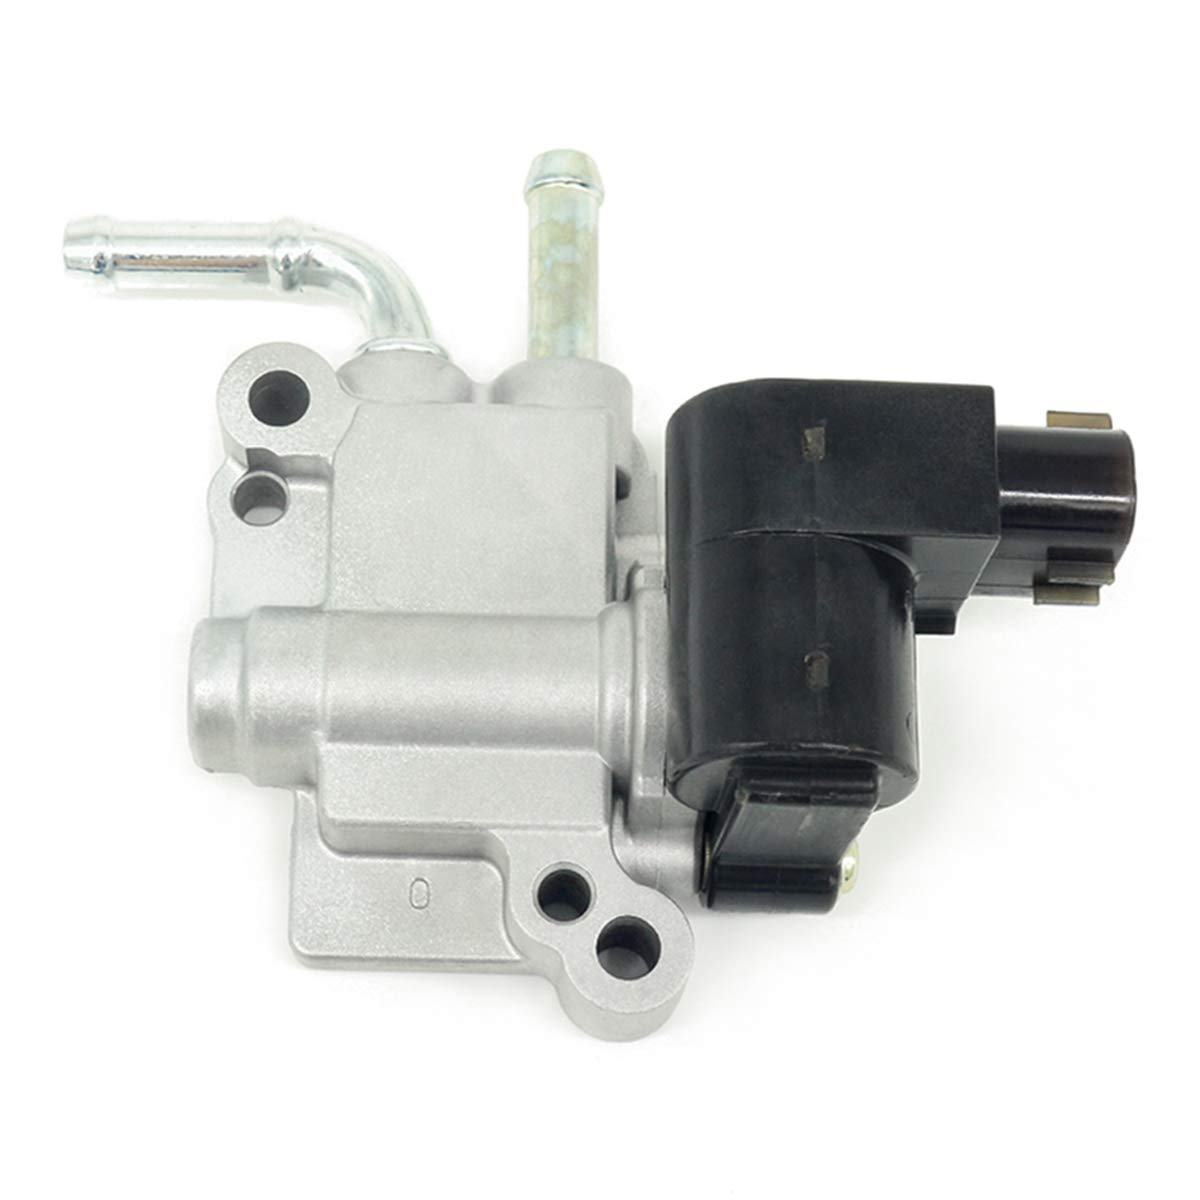 Air Control Valve Replacement for 00-2009 Honda 00-05 S2000 F20C AP1 AP2 IS20 Rotary 36460-PCX-003 36460PCX003